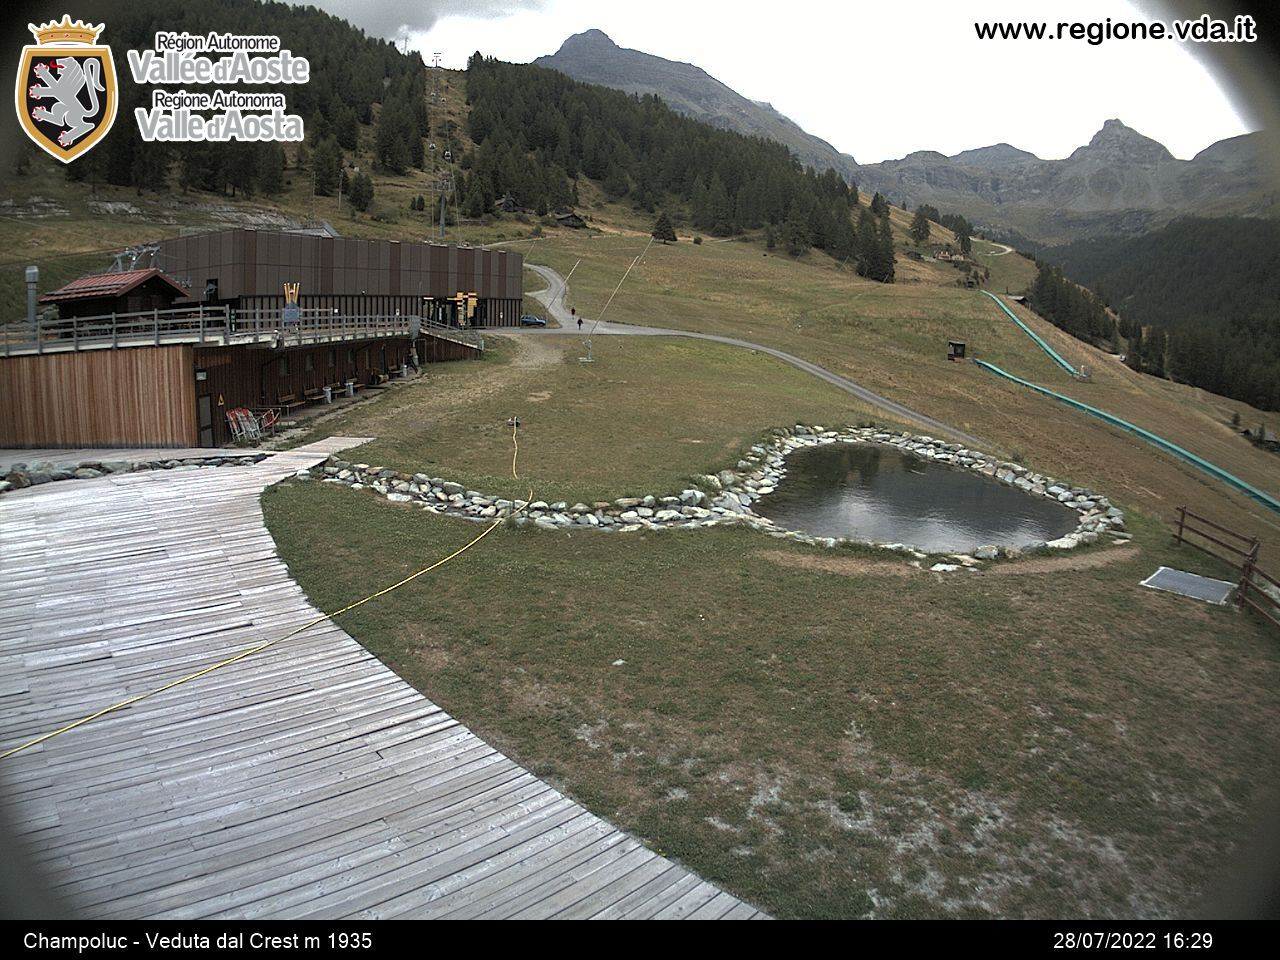 Webcam, Champoluc